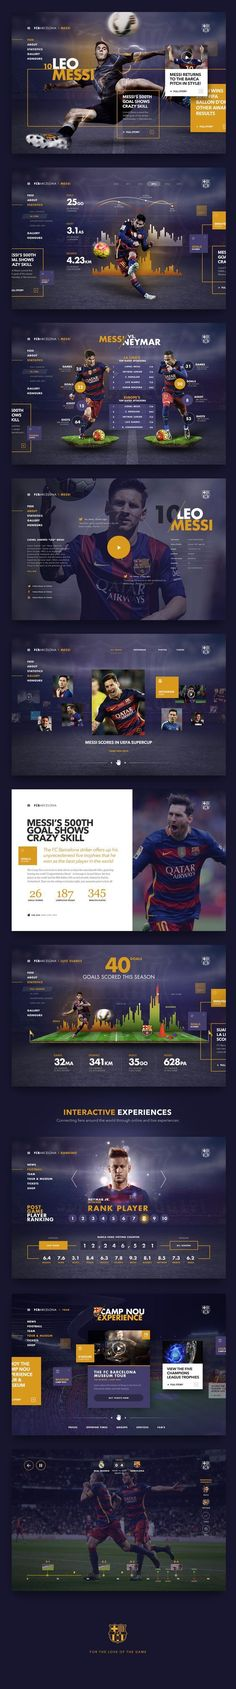 FC Barcelona design by Fred Nerby. https://www.behance.net/gallery/37276397/FC-Barcelona:. The UX Blog podcast is also available on iTunes.